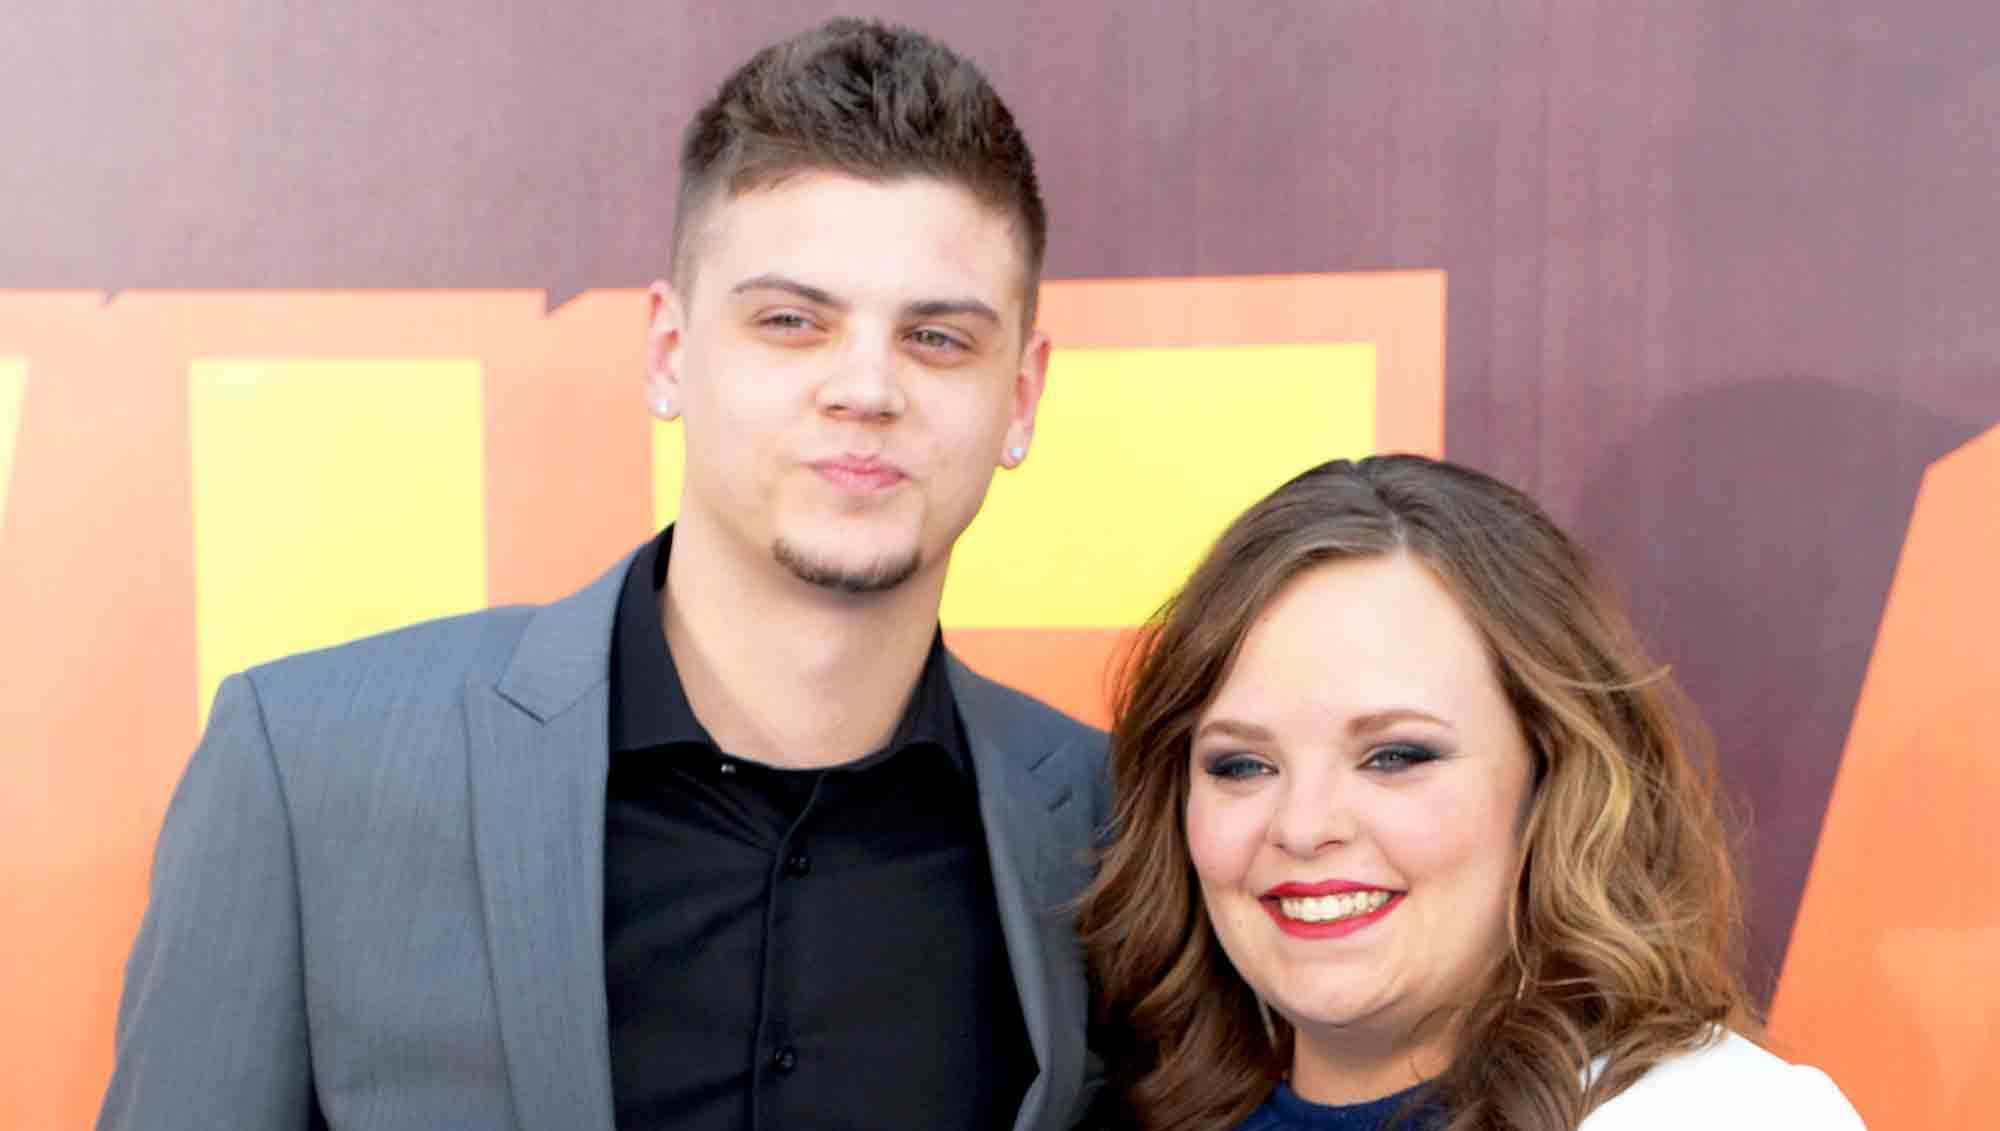 Tyler Baltierra and Catelynn Lowell attend The 2015 MTV Movie Awards at Nokia Theatre L.A. Live in Los Angeles, California.